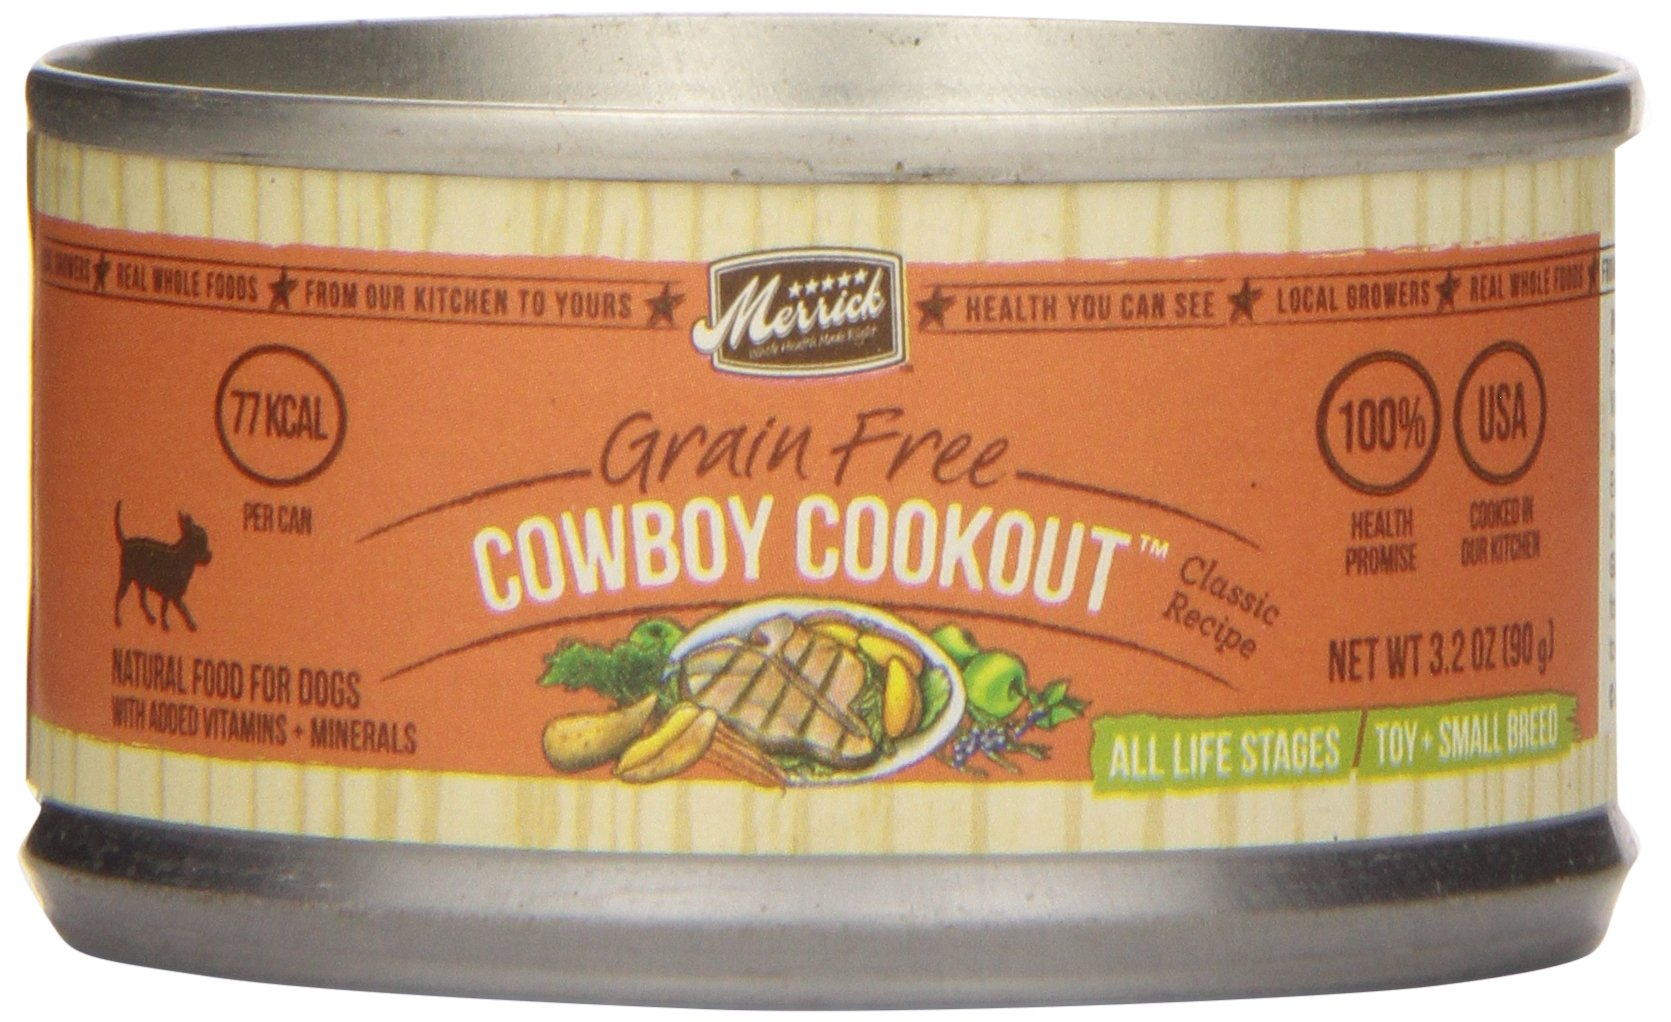 Classic Small Breed Cowboy Cookout Canned Dog Food (3.2-oz, case of 24)